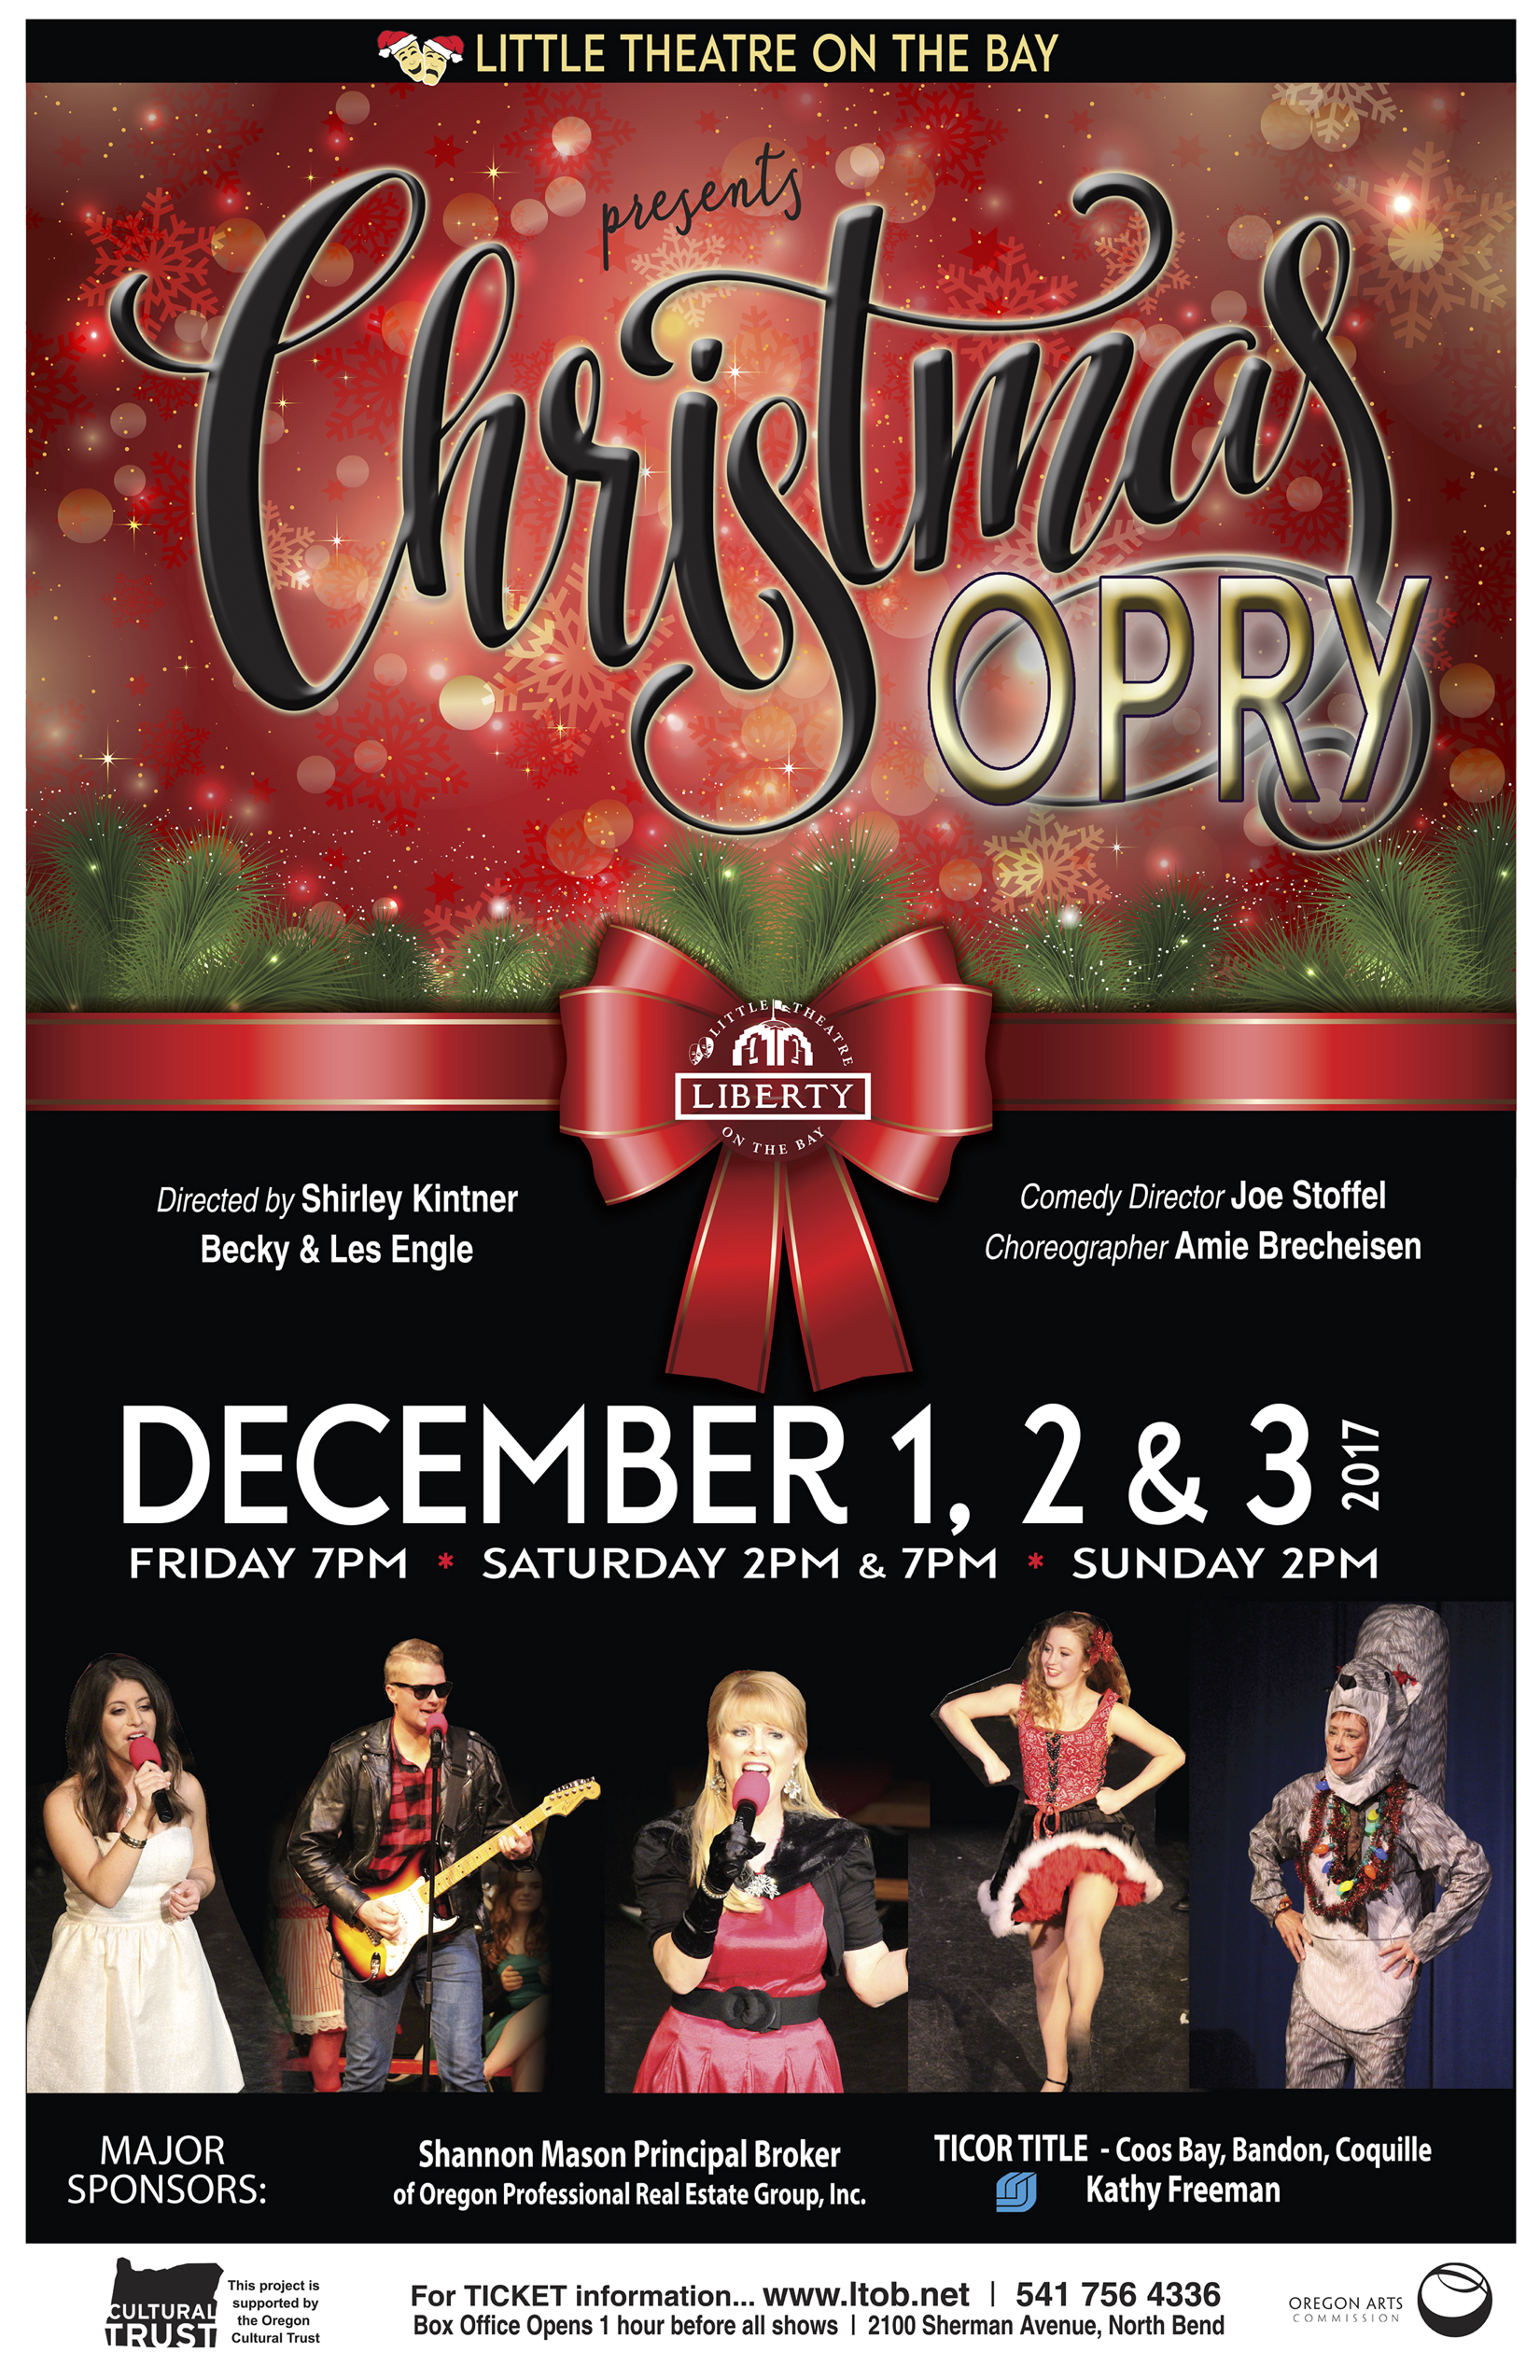 LTOB_Christmas Opry POSTER